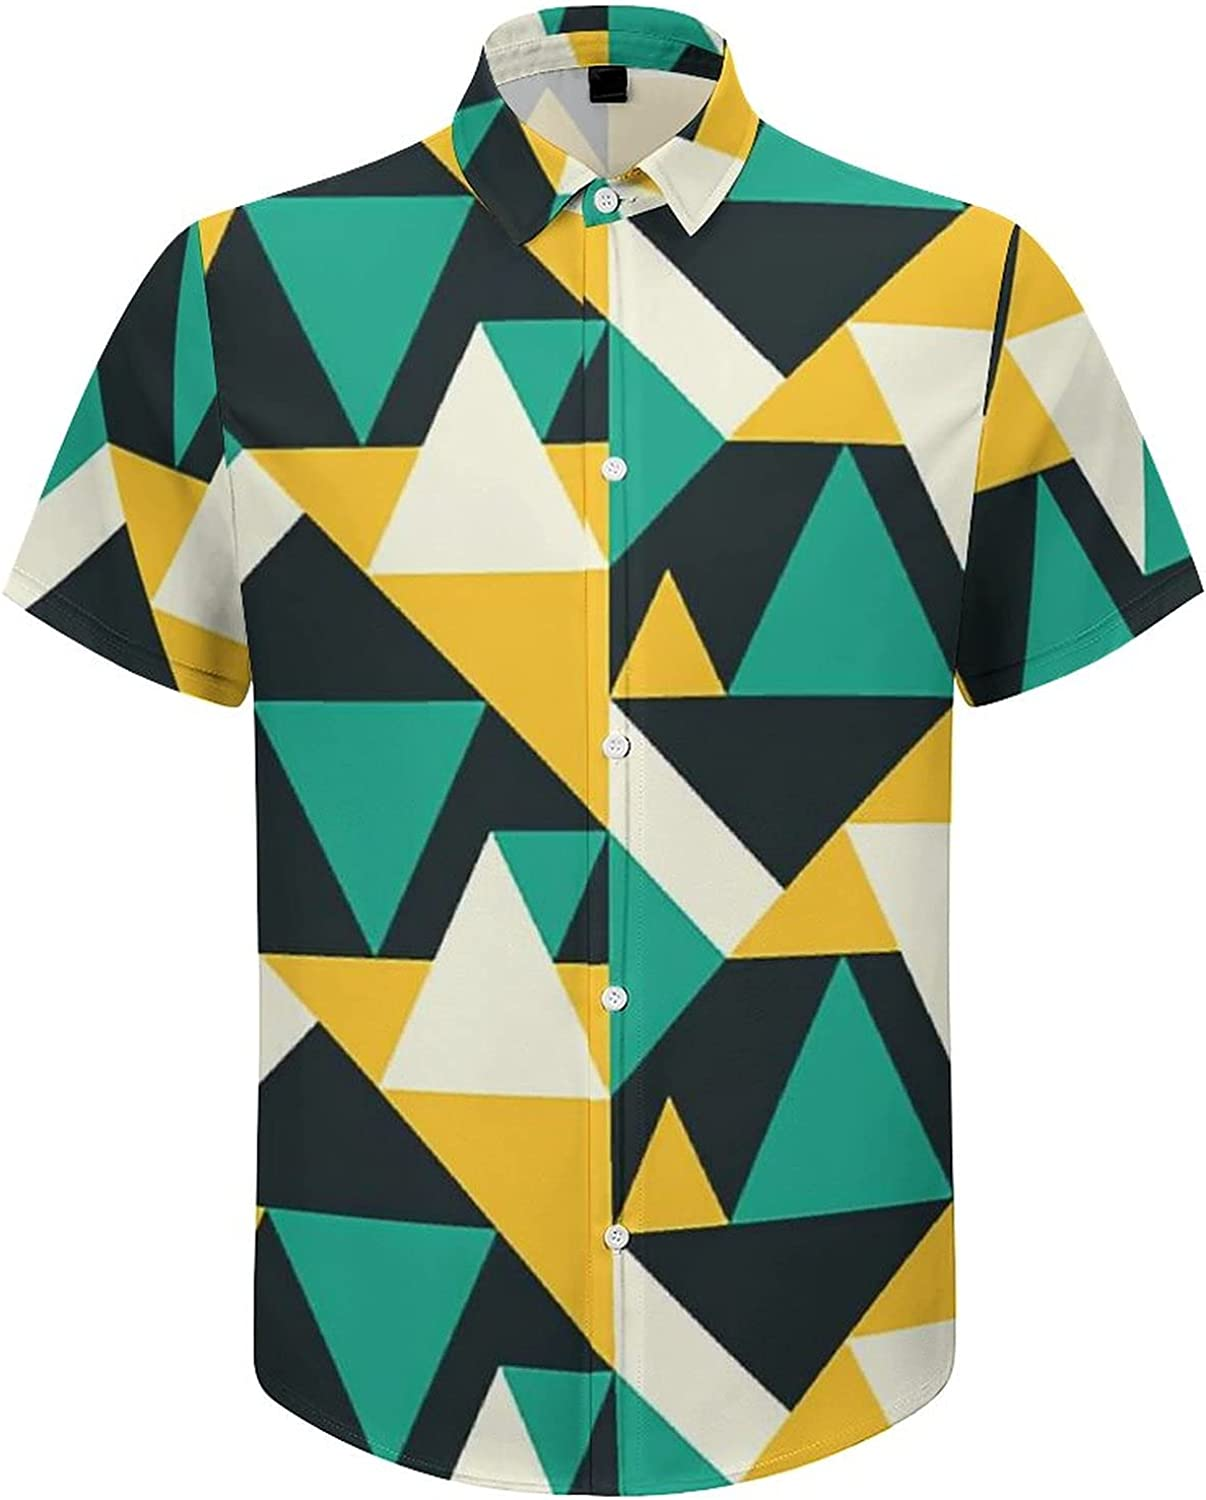 Men's Regular-Fit Short-Sleeve Printed Party Holiday Shirt Geometric Abstract